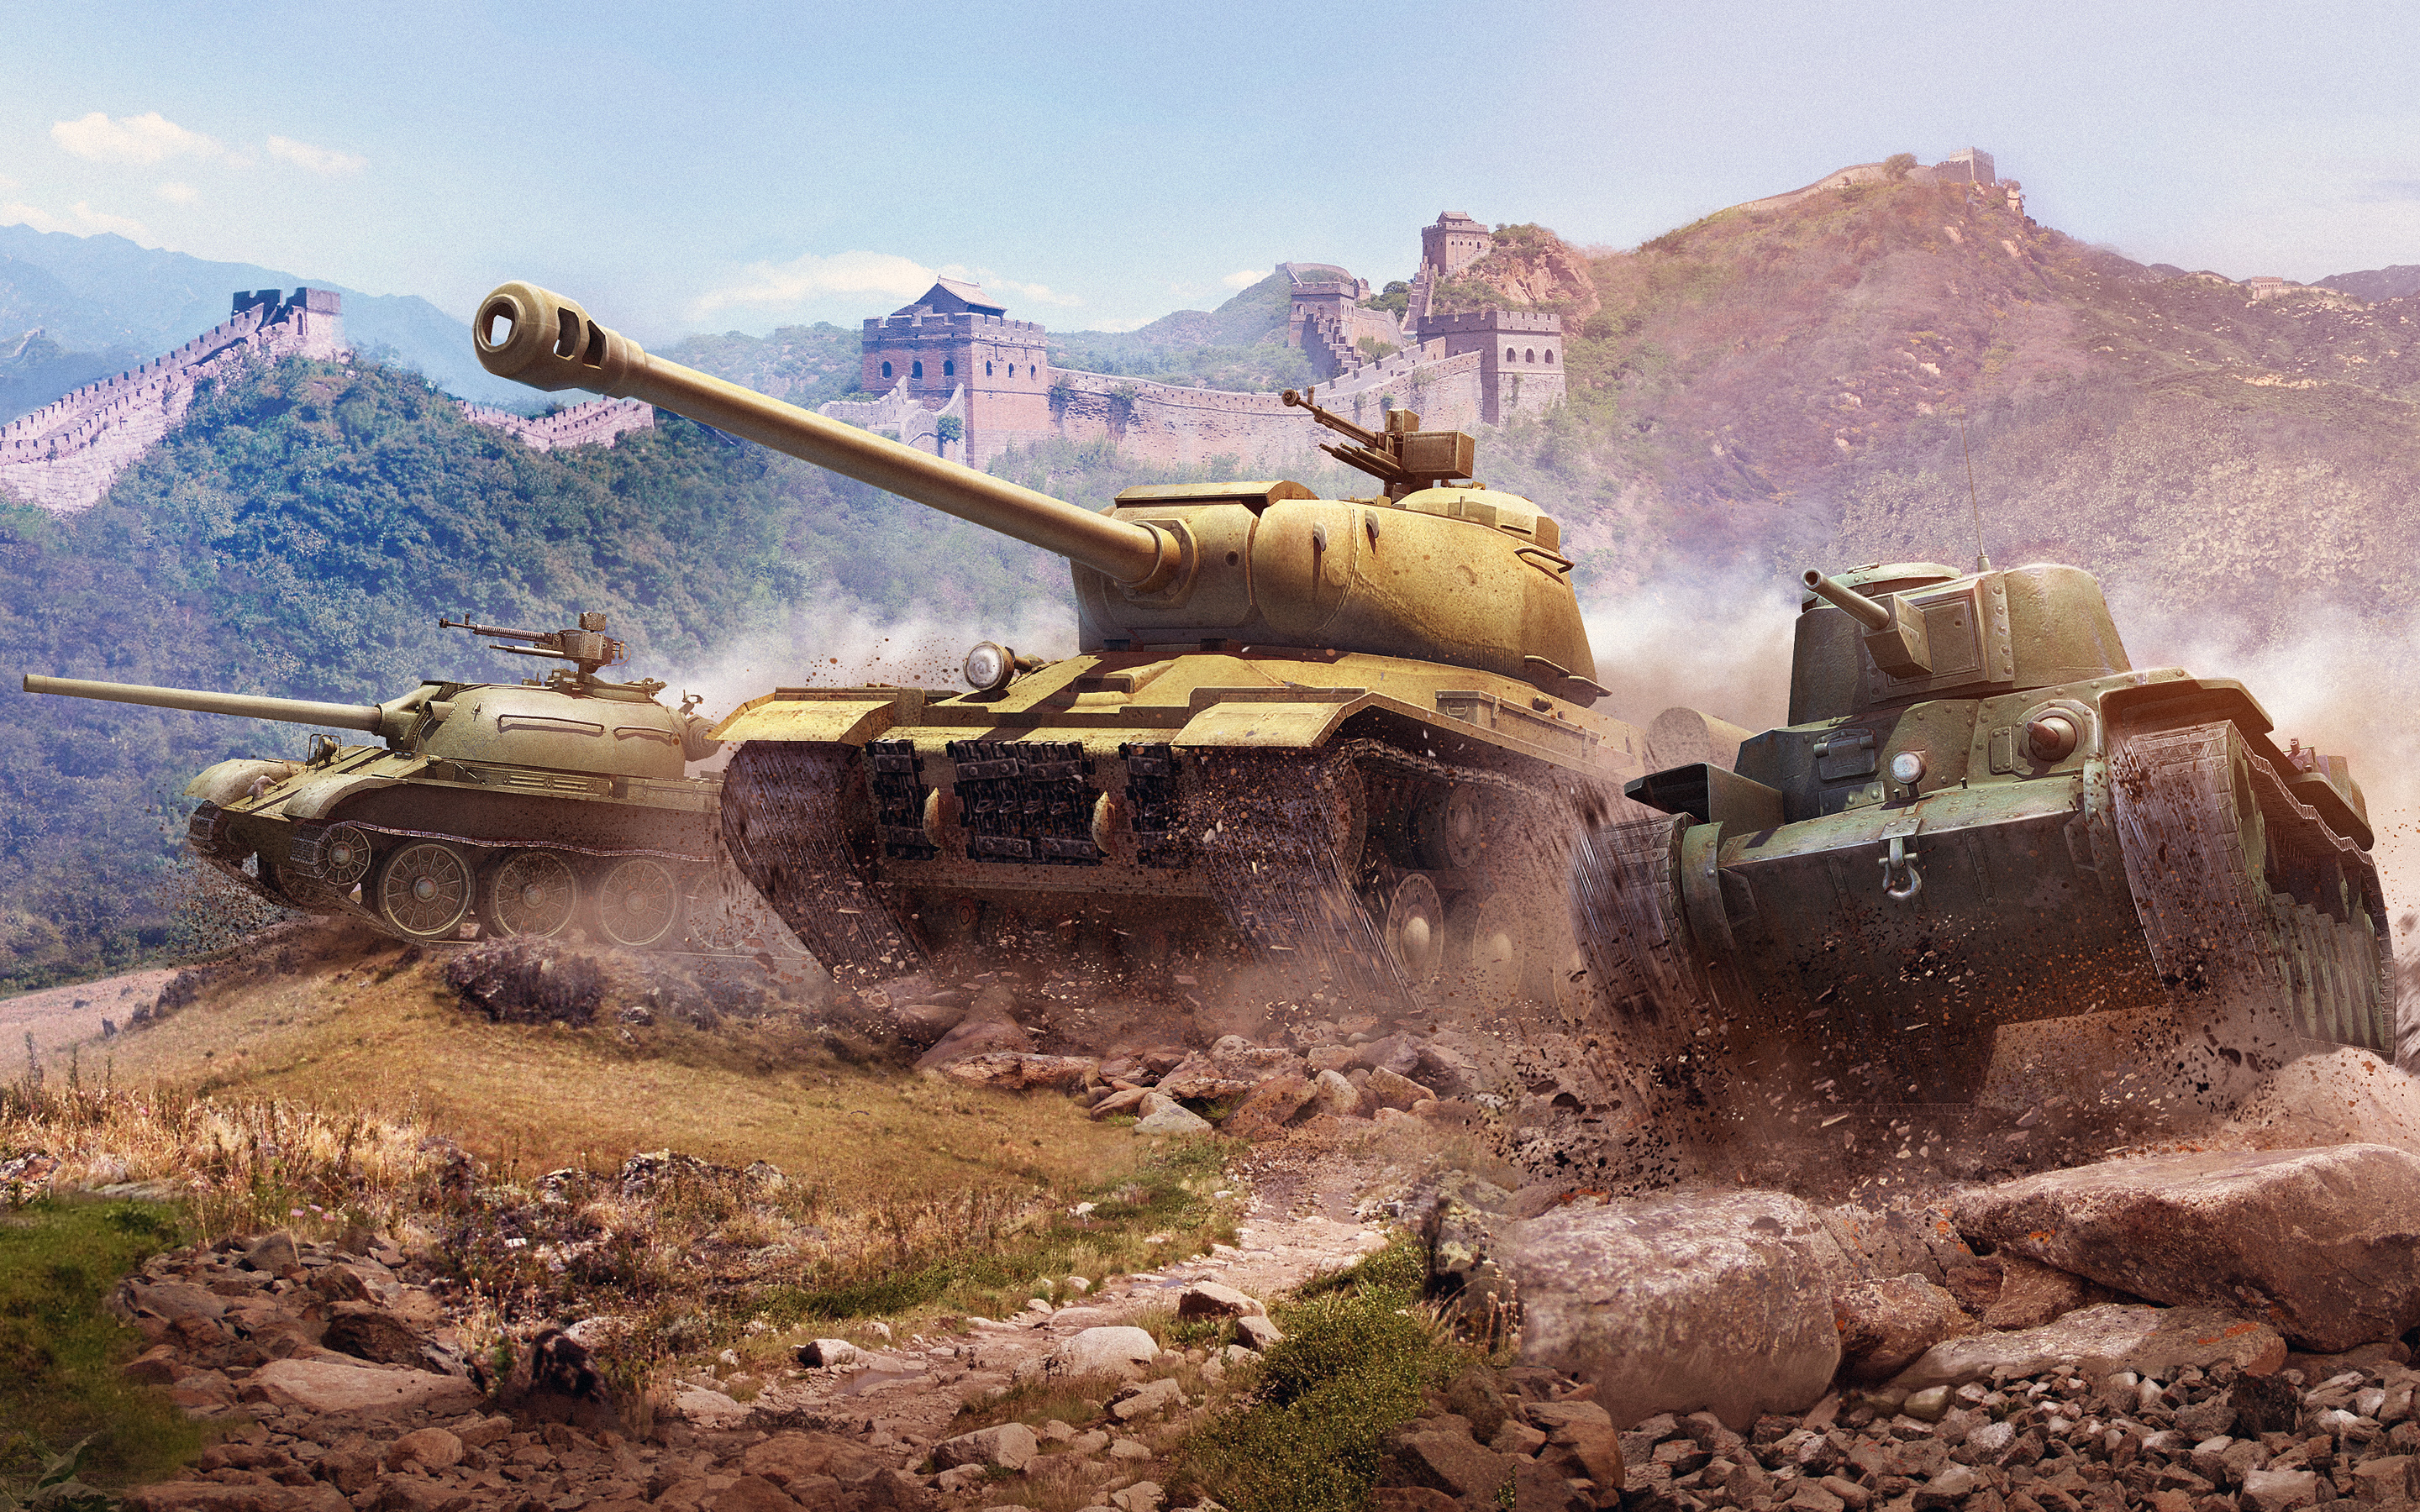 World of Tanks Chinese Tanks 1154.22 Kb